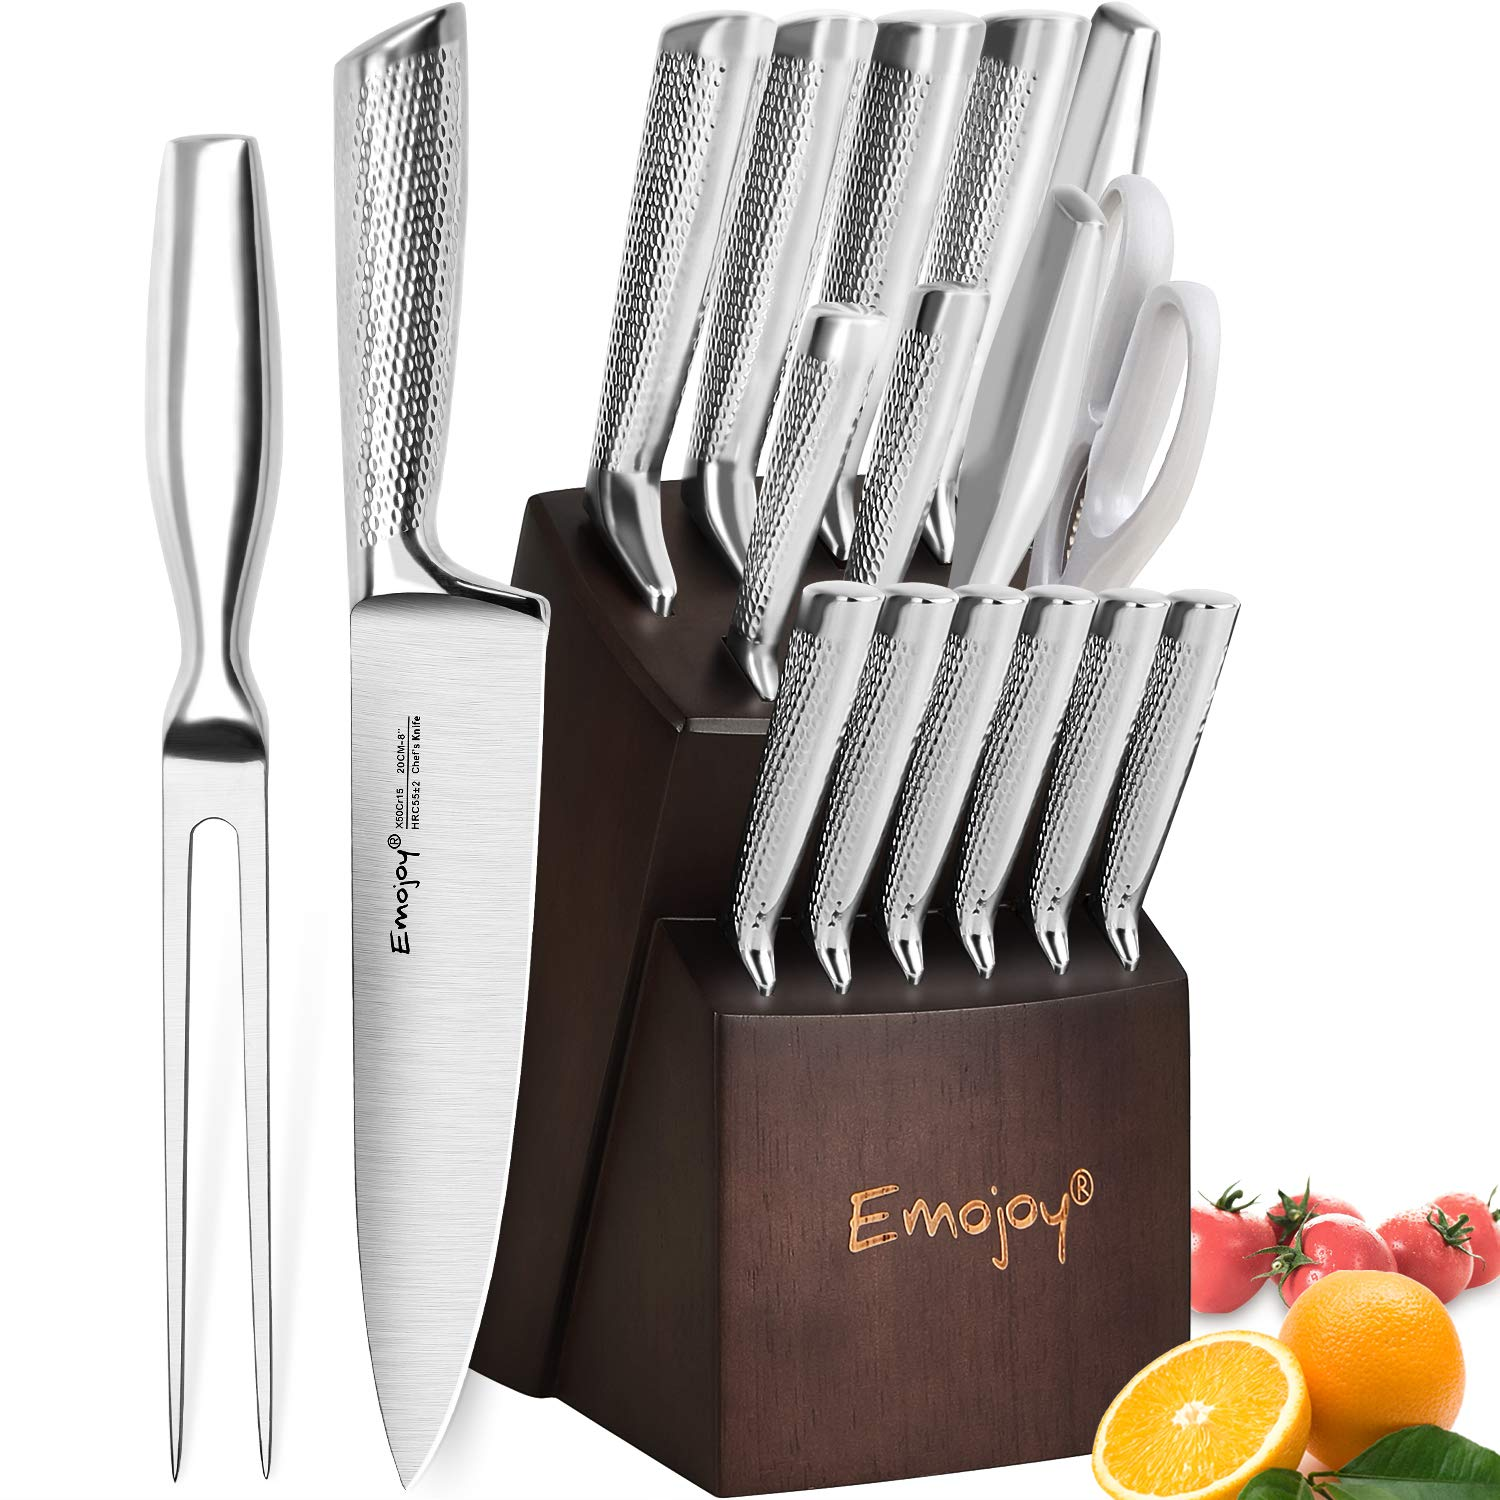 Knife Set, Emojoy 16-PCS Kitchen Knife Set with Carving Fork, Ripple Stainless Steel Hollow Handle for Chef Knife Set with Wooden Block, Perfect Cutlery Set Gift by emojoy